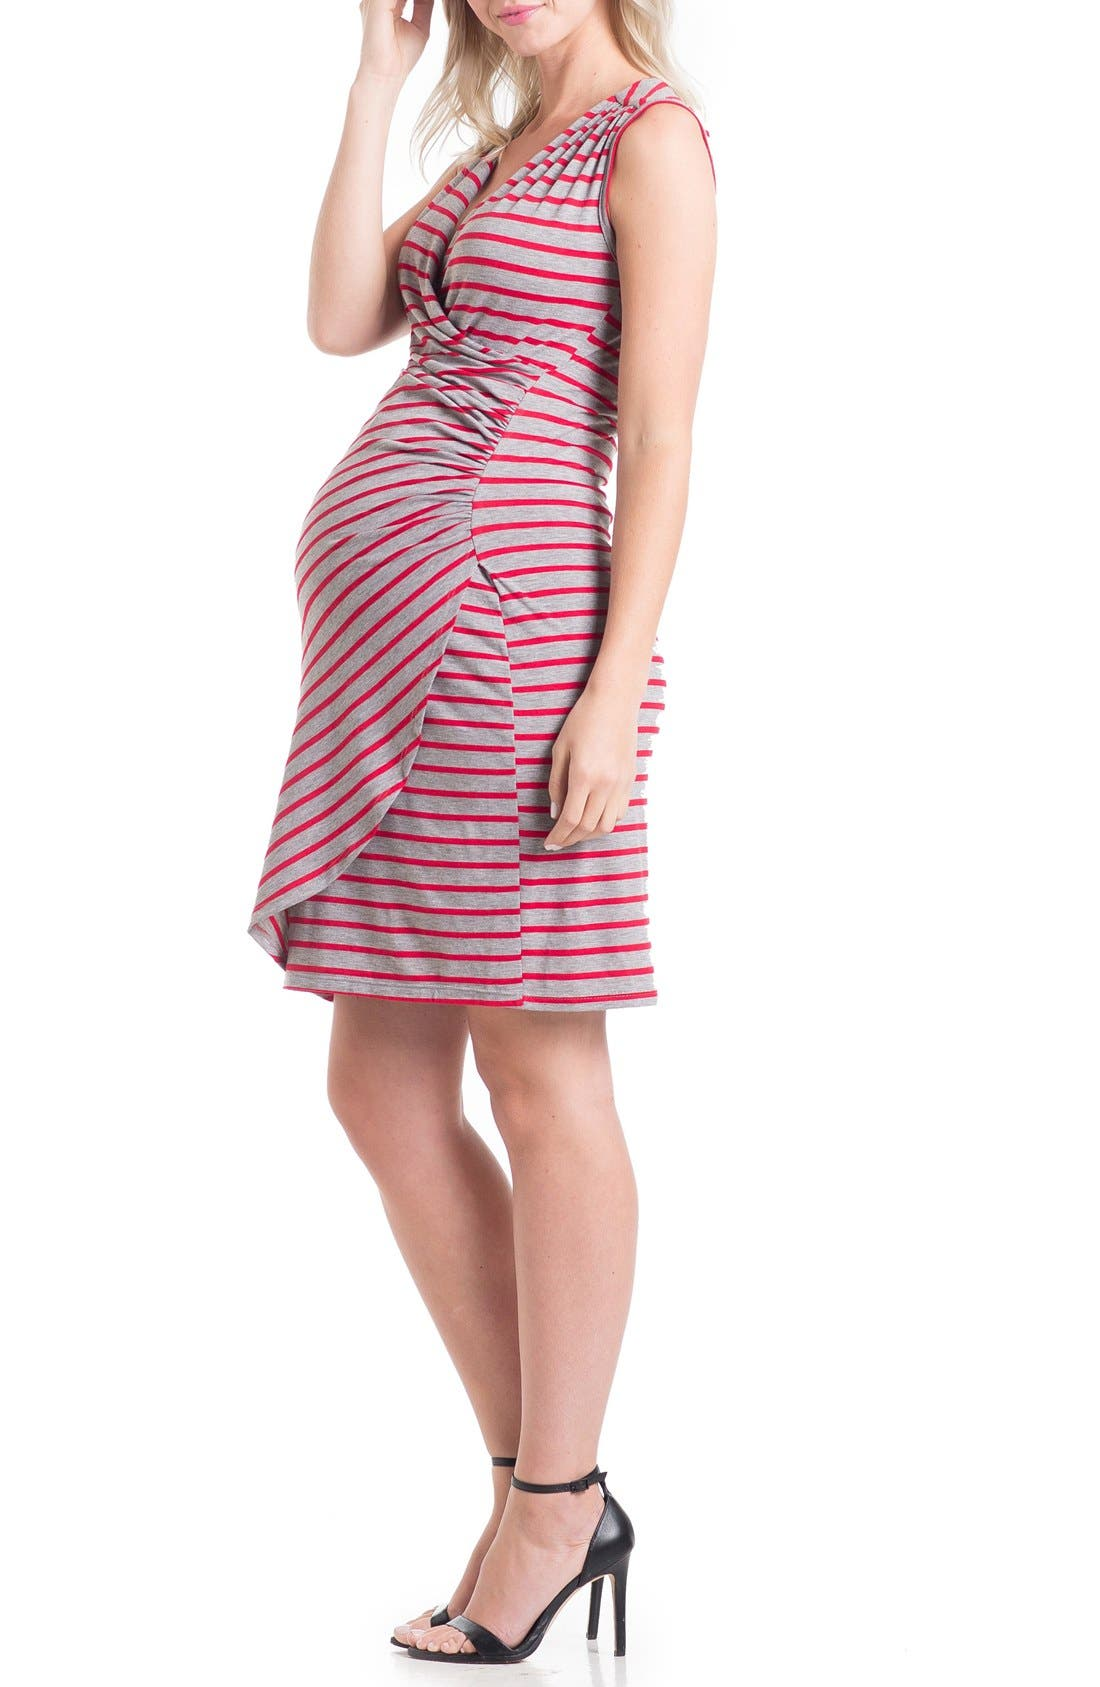 'Brynley' Surplice Maternity Dress,                             Main thumbnail 1, color,                             Grey/ Tomato Stripe